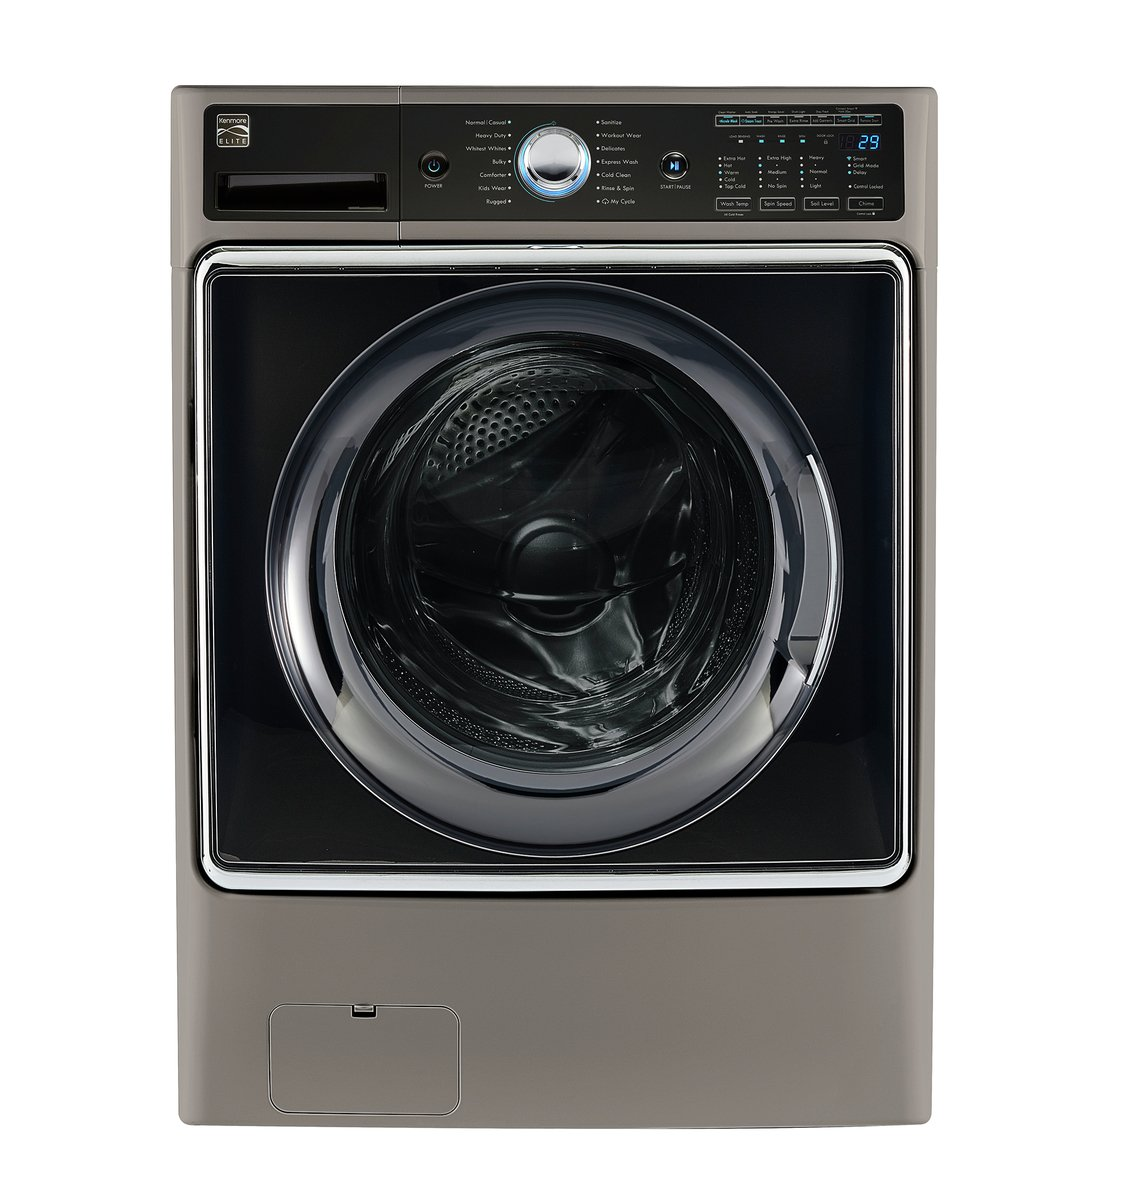 Kenmore Smart 75042 5.2 cu.ft. Front Load Washer with Accela Wash Technology in Metallic Silver  - Works with Amazon Alexa, includes delivery and hookup (Available in select cities only) by Kenmore